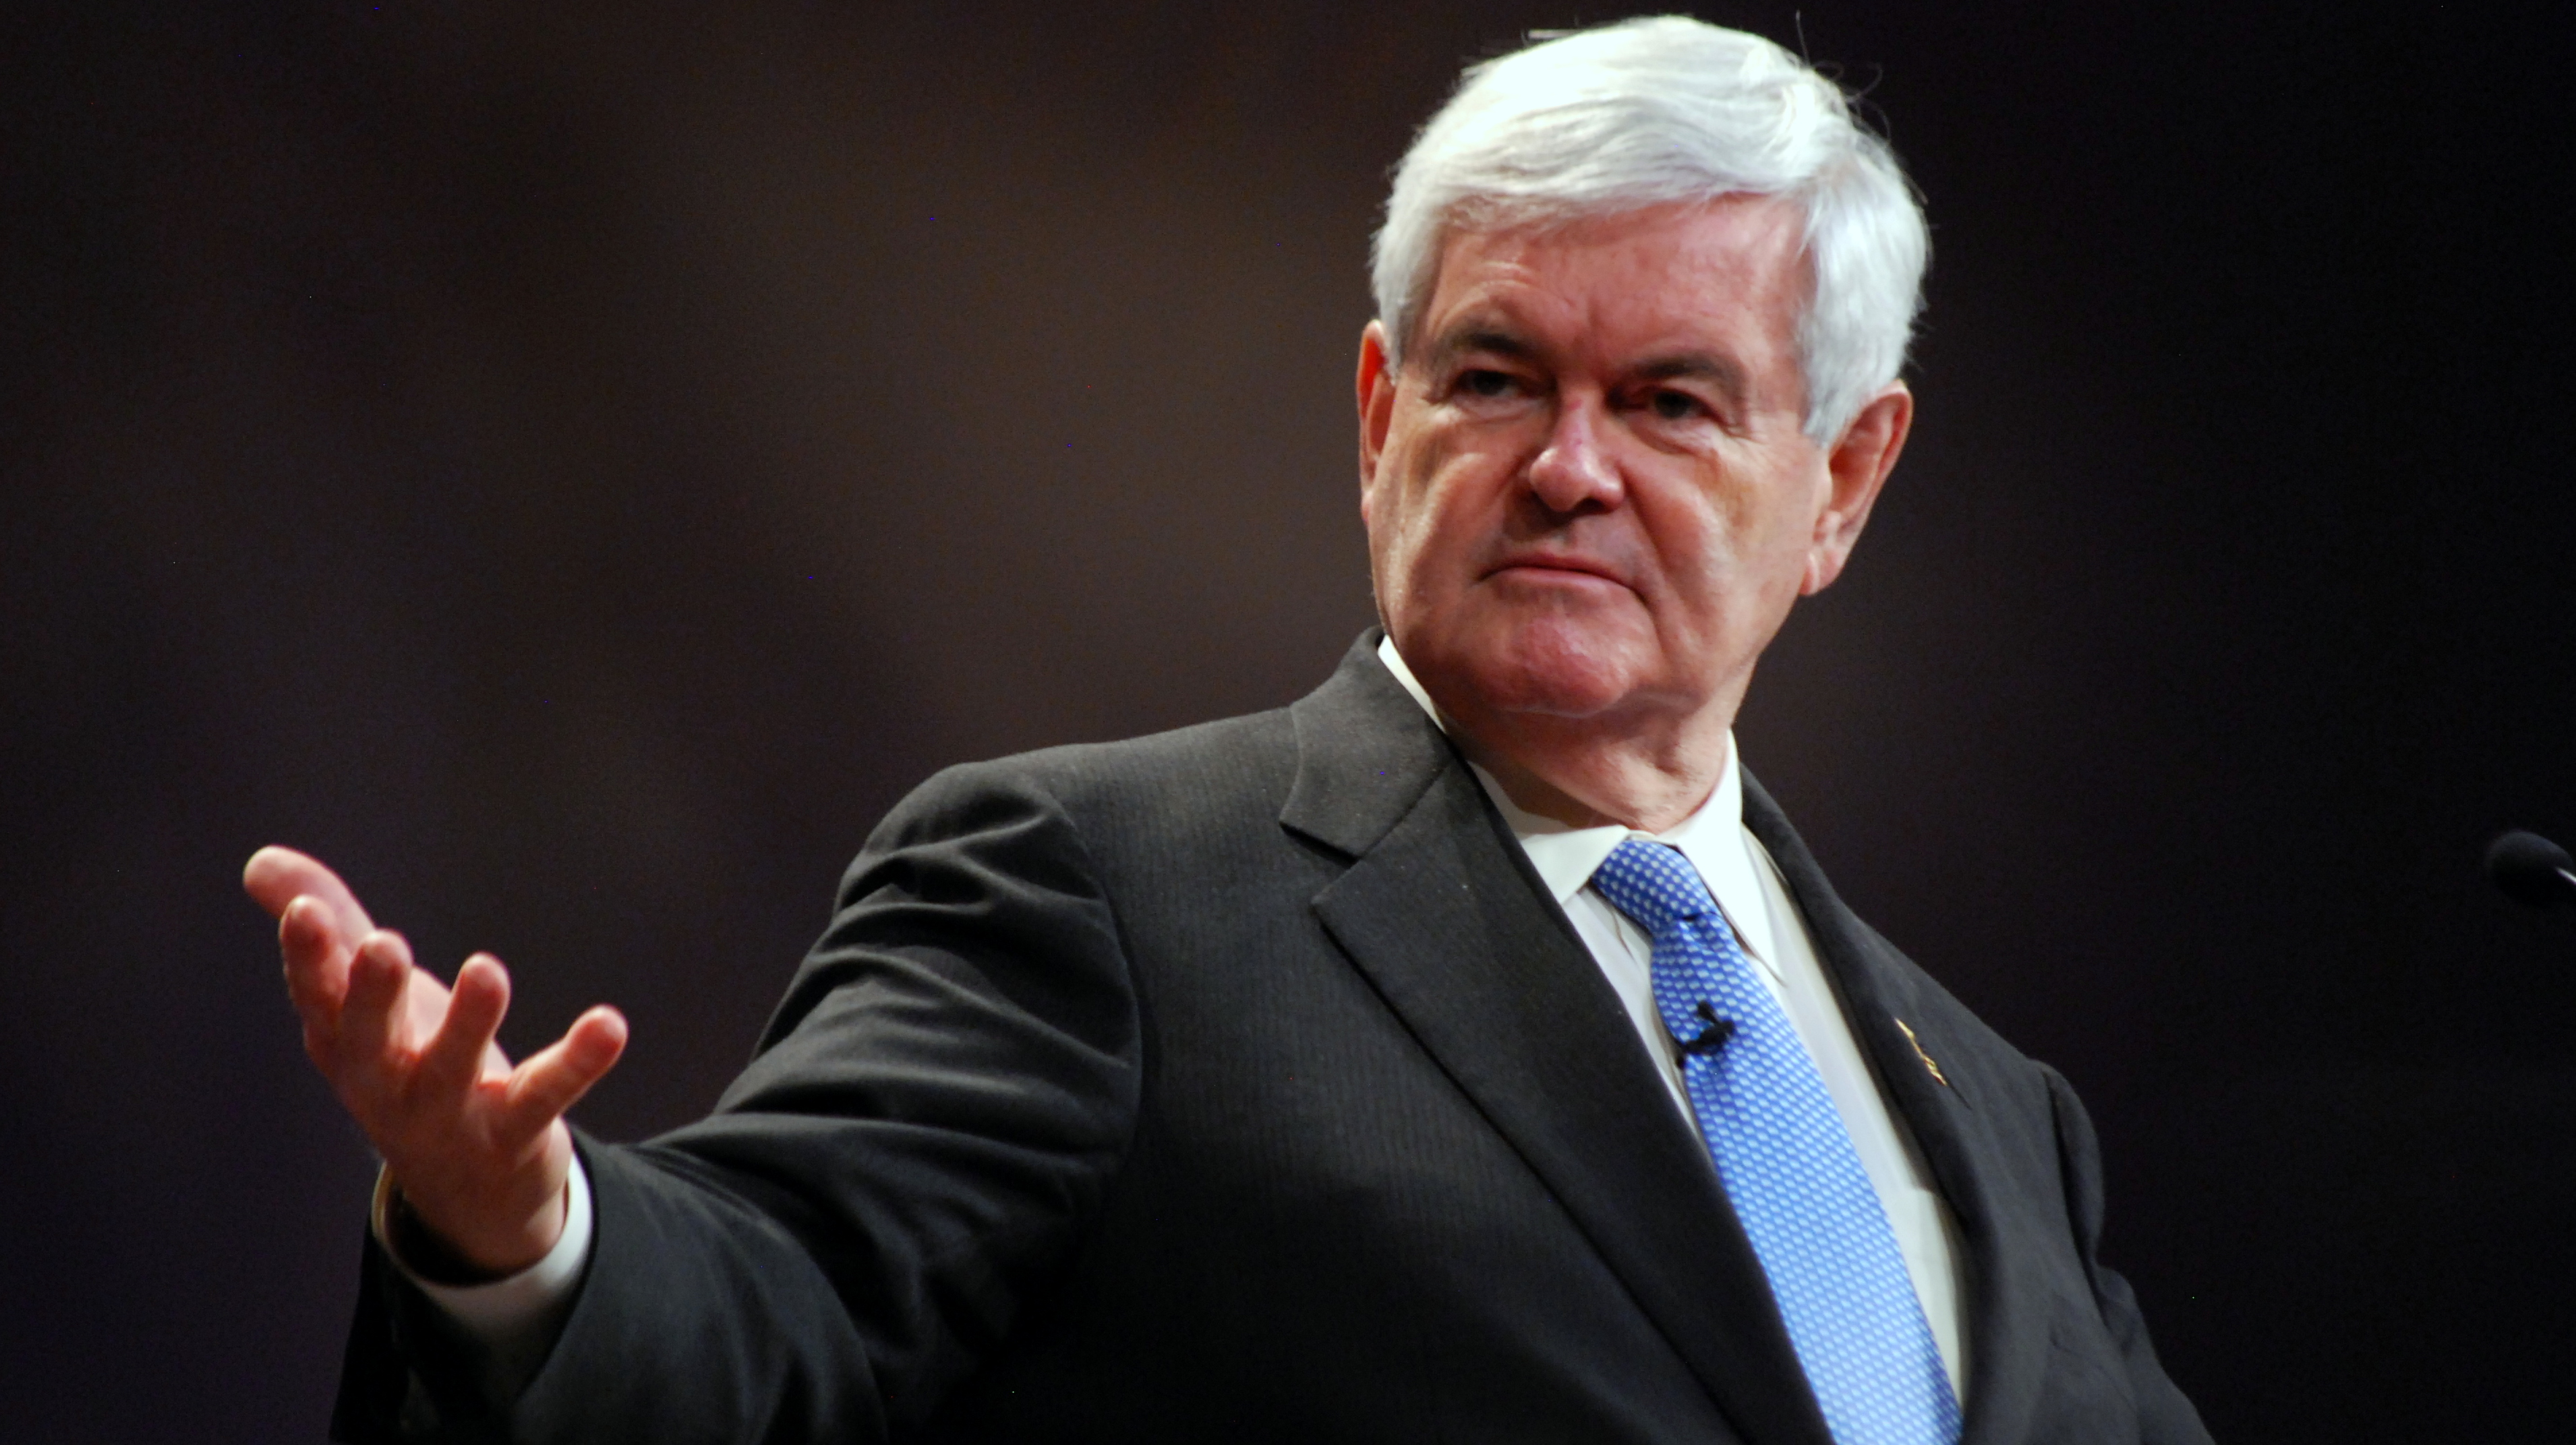 Poll: Gingrich ahead in Georgia by double-digit margin